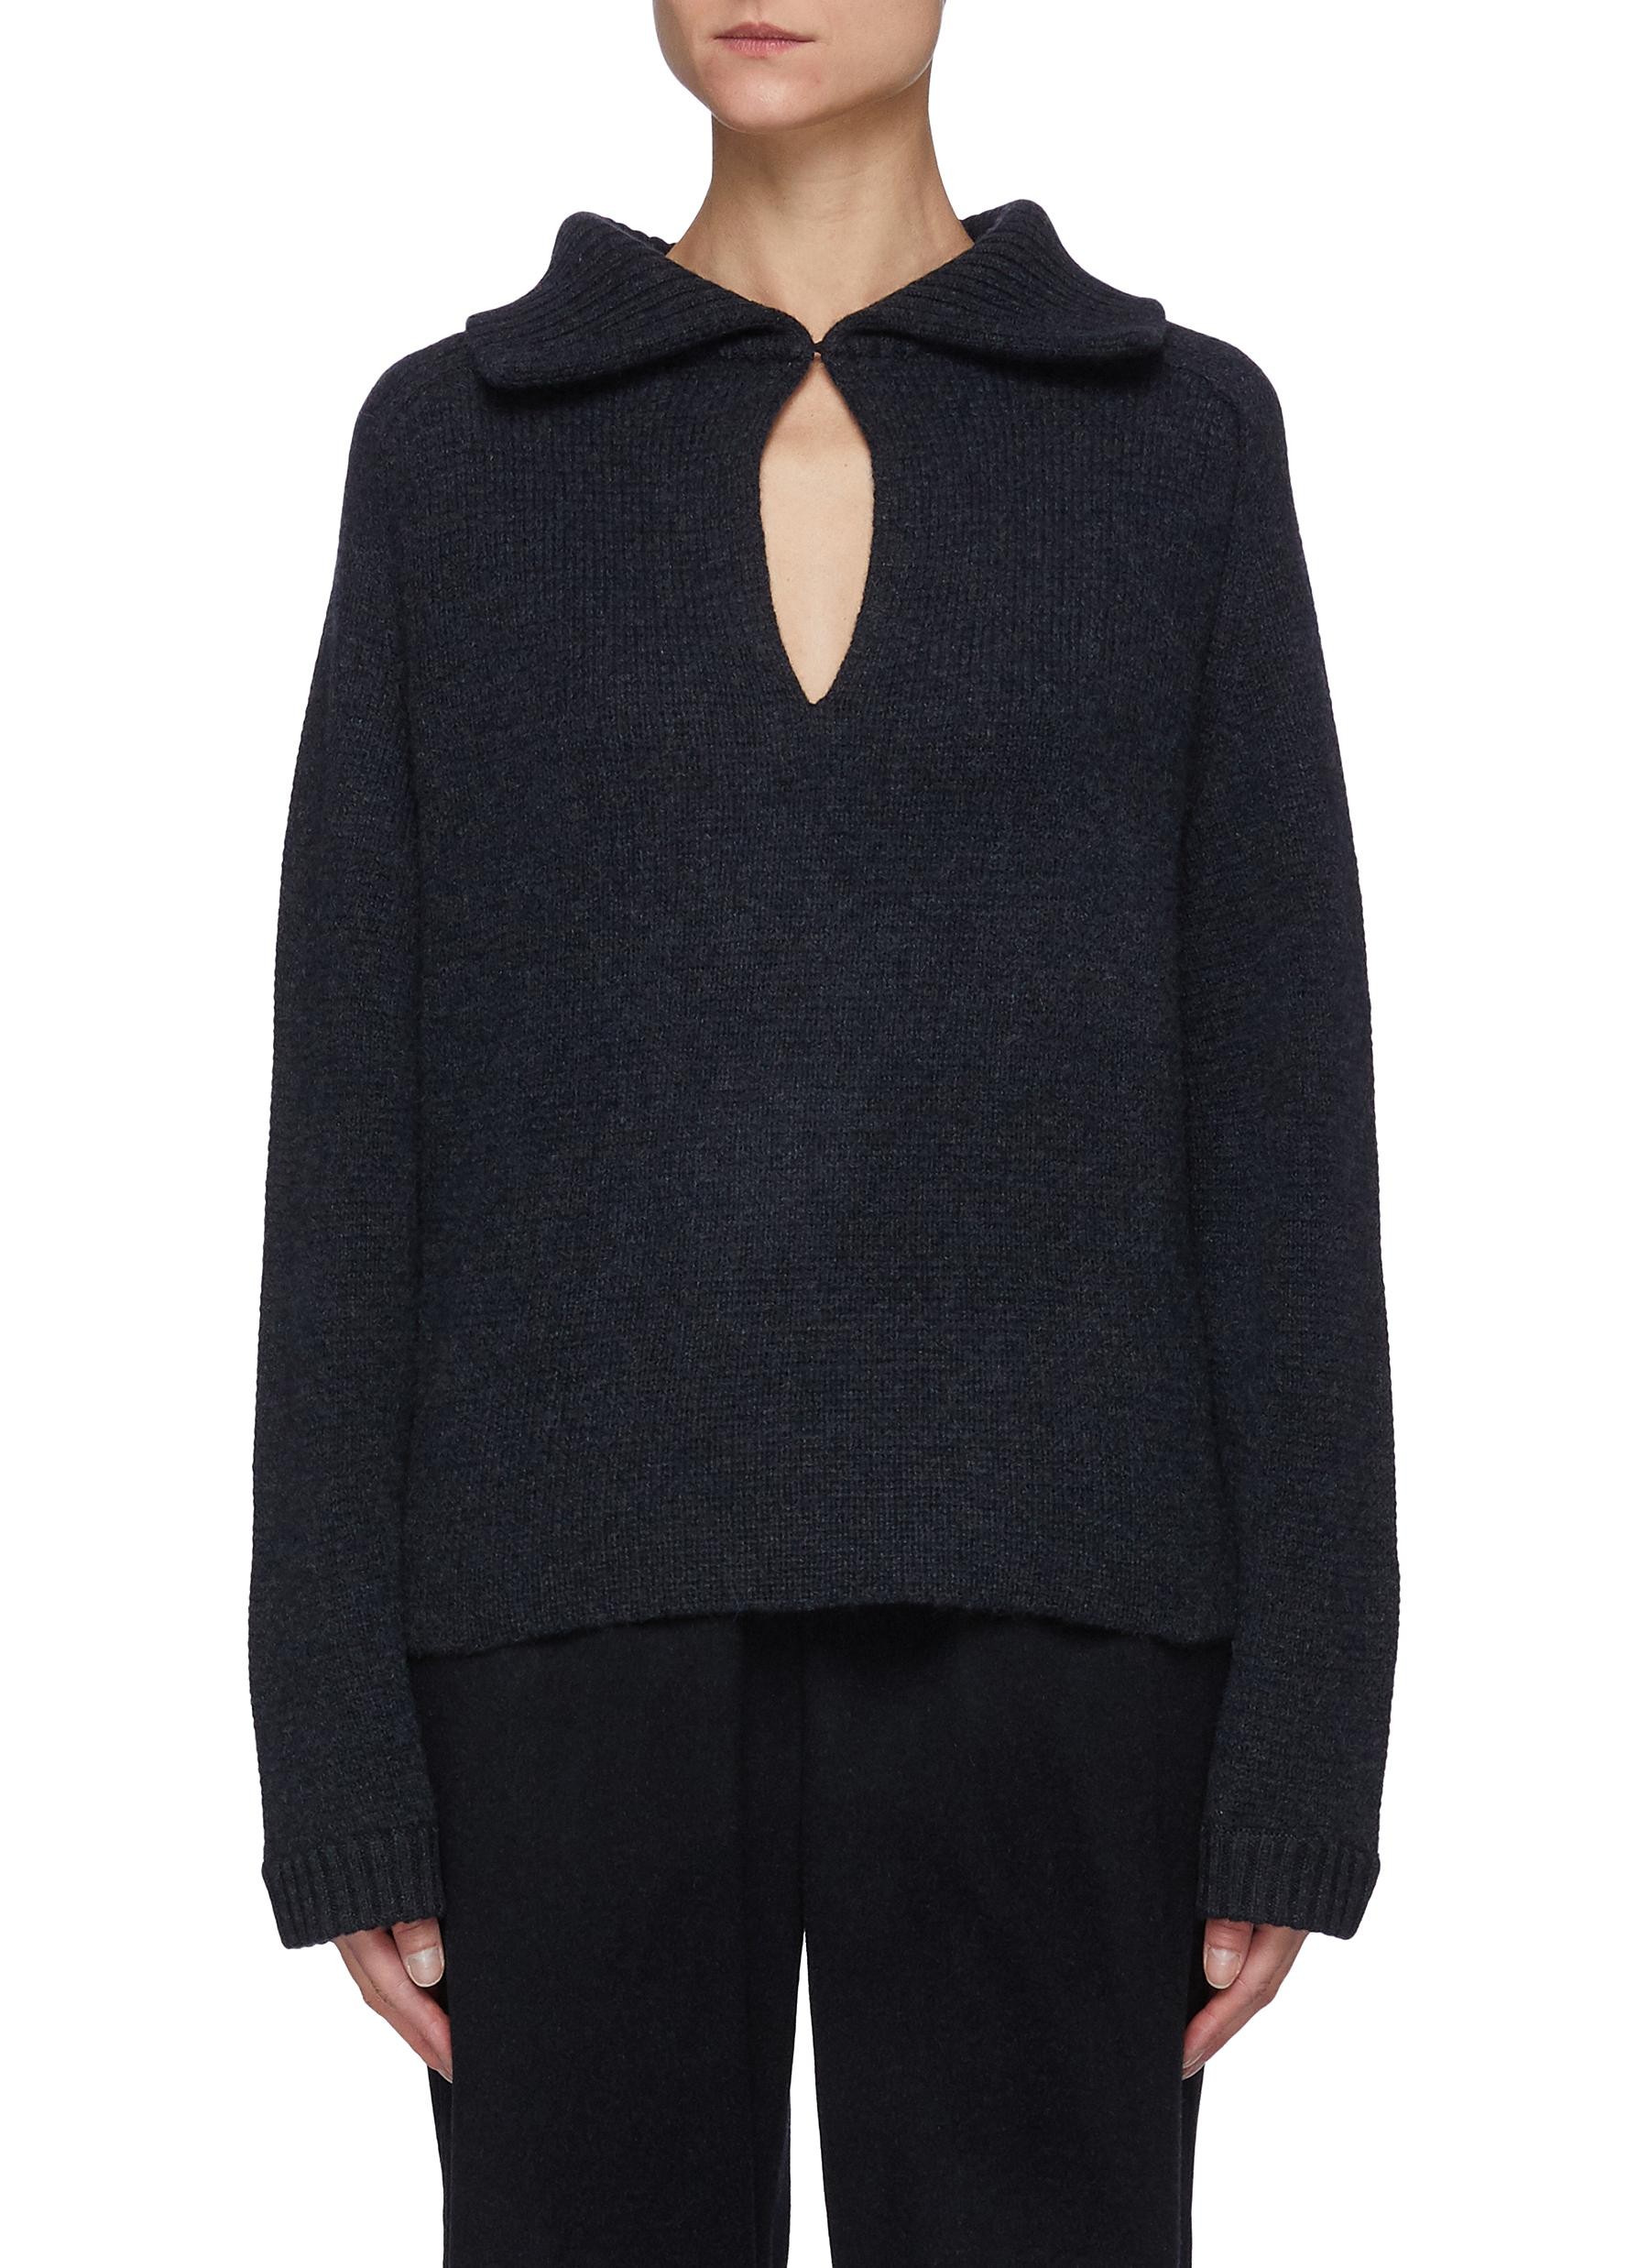 Leling' Wide Collar Front Opening Sweater